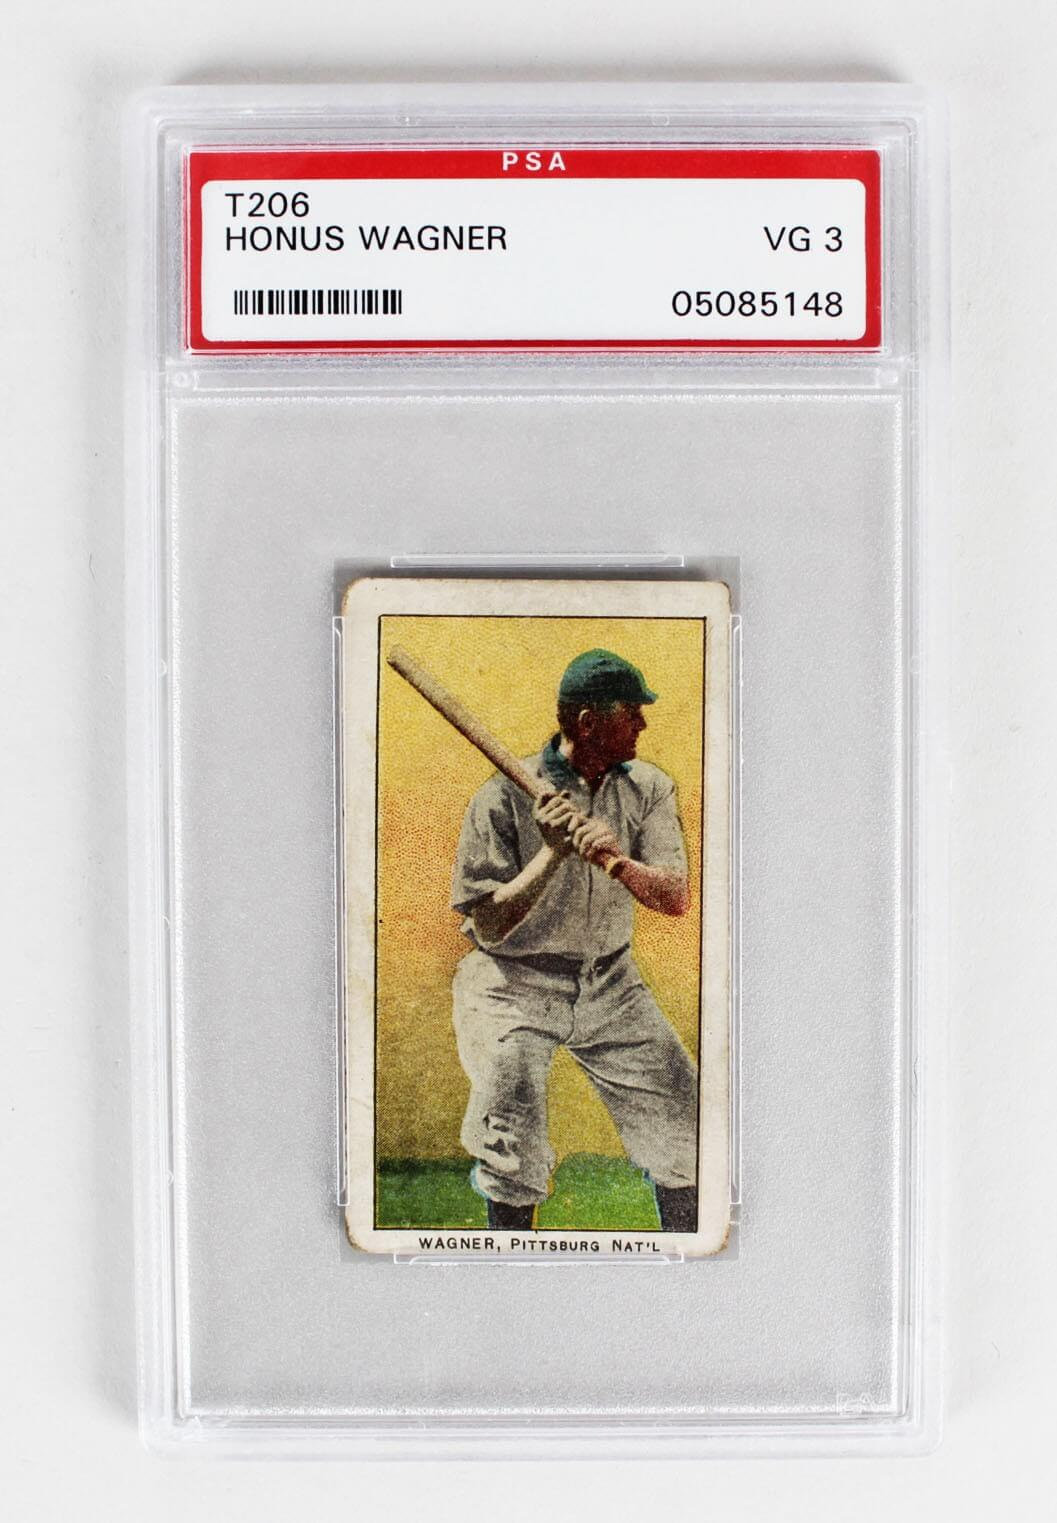 1909 E95 Philadelphia Caramel Card - Honus Wagner (PSA Graded VG3 - Encapsulated as T206)